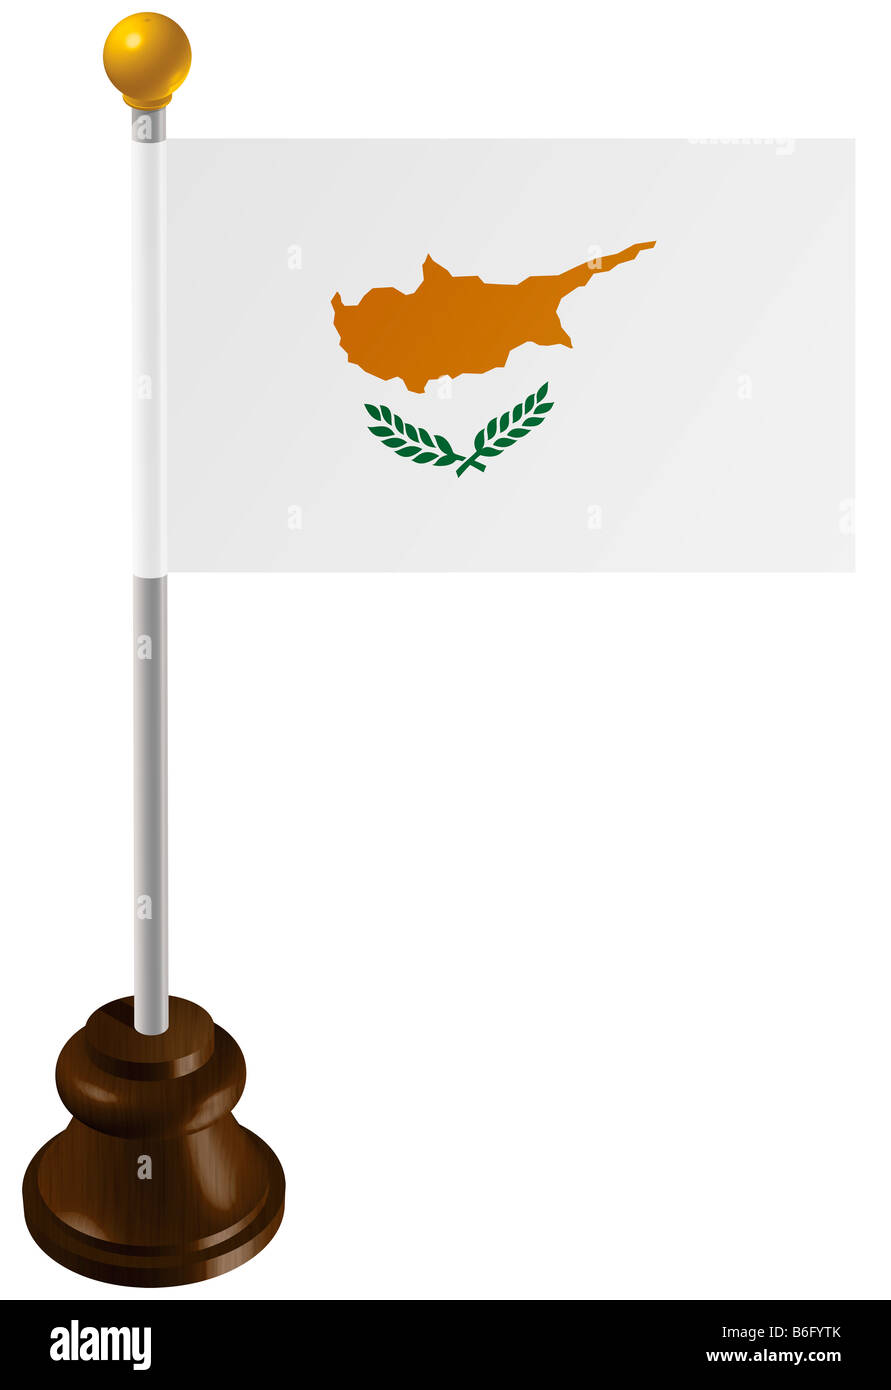 Cyprus flag as a marker - Stock Image